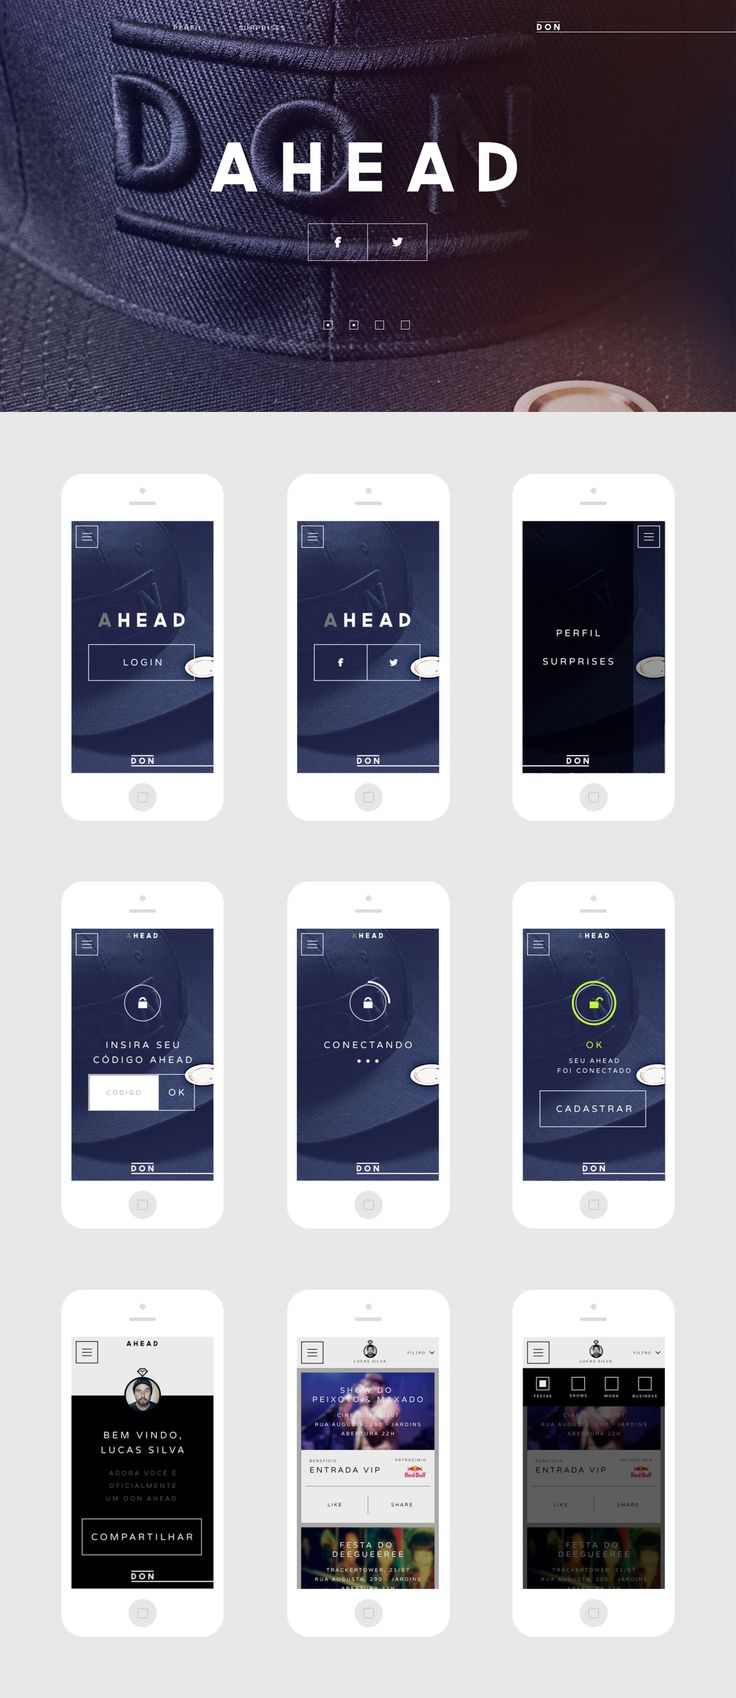 Ahead Interface #UI